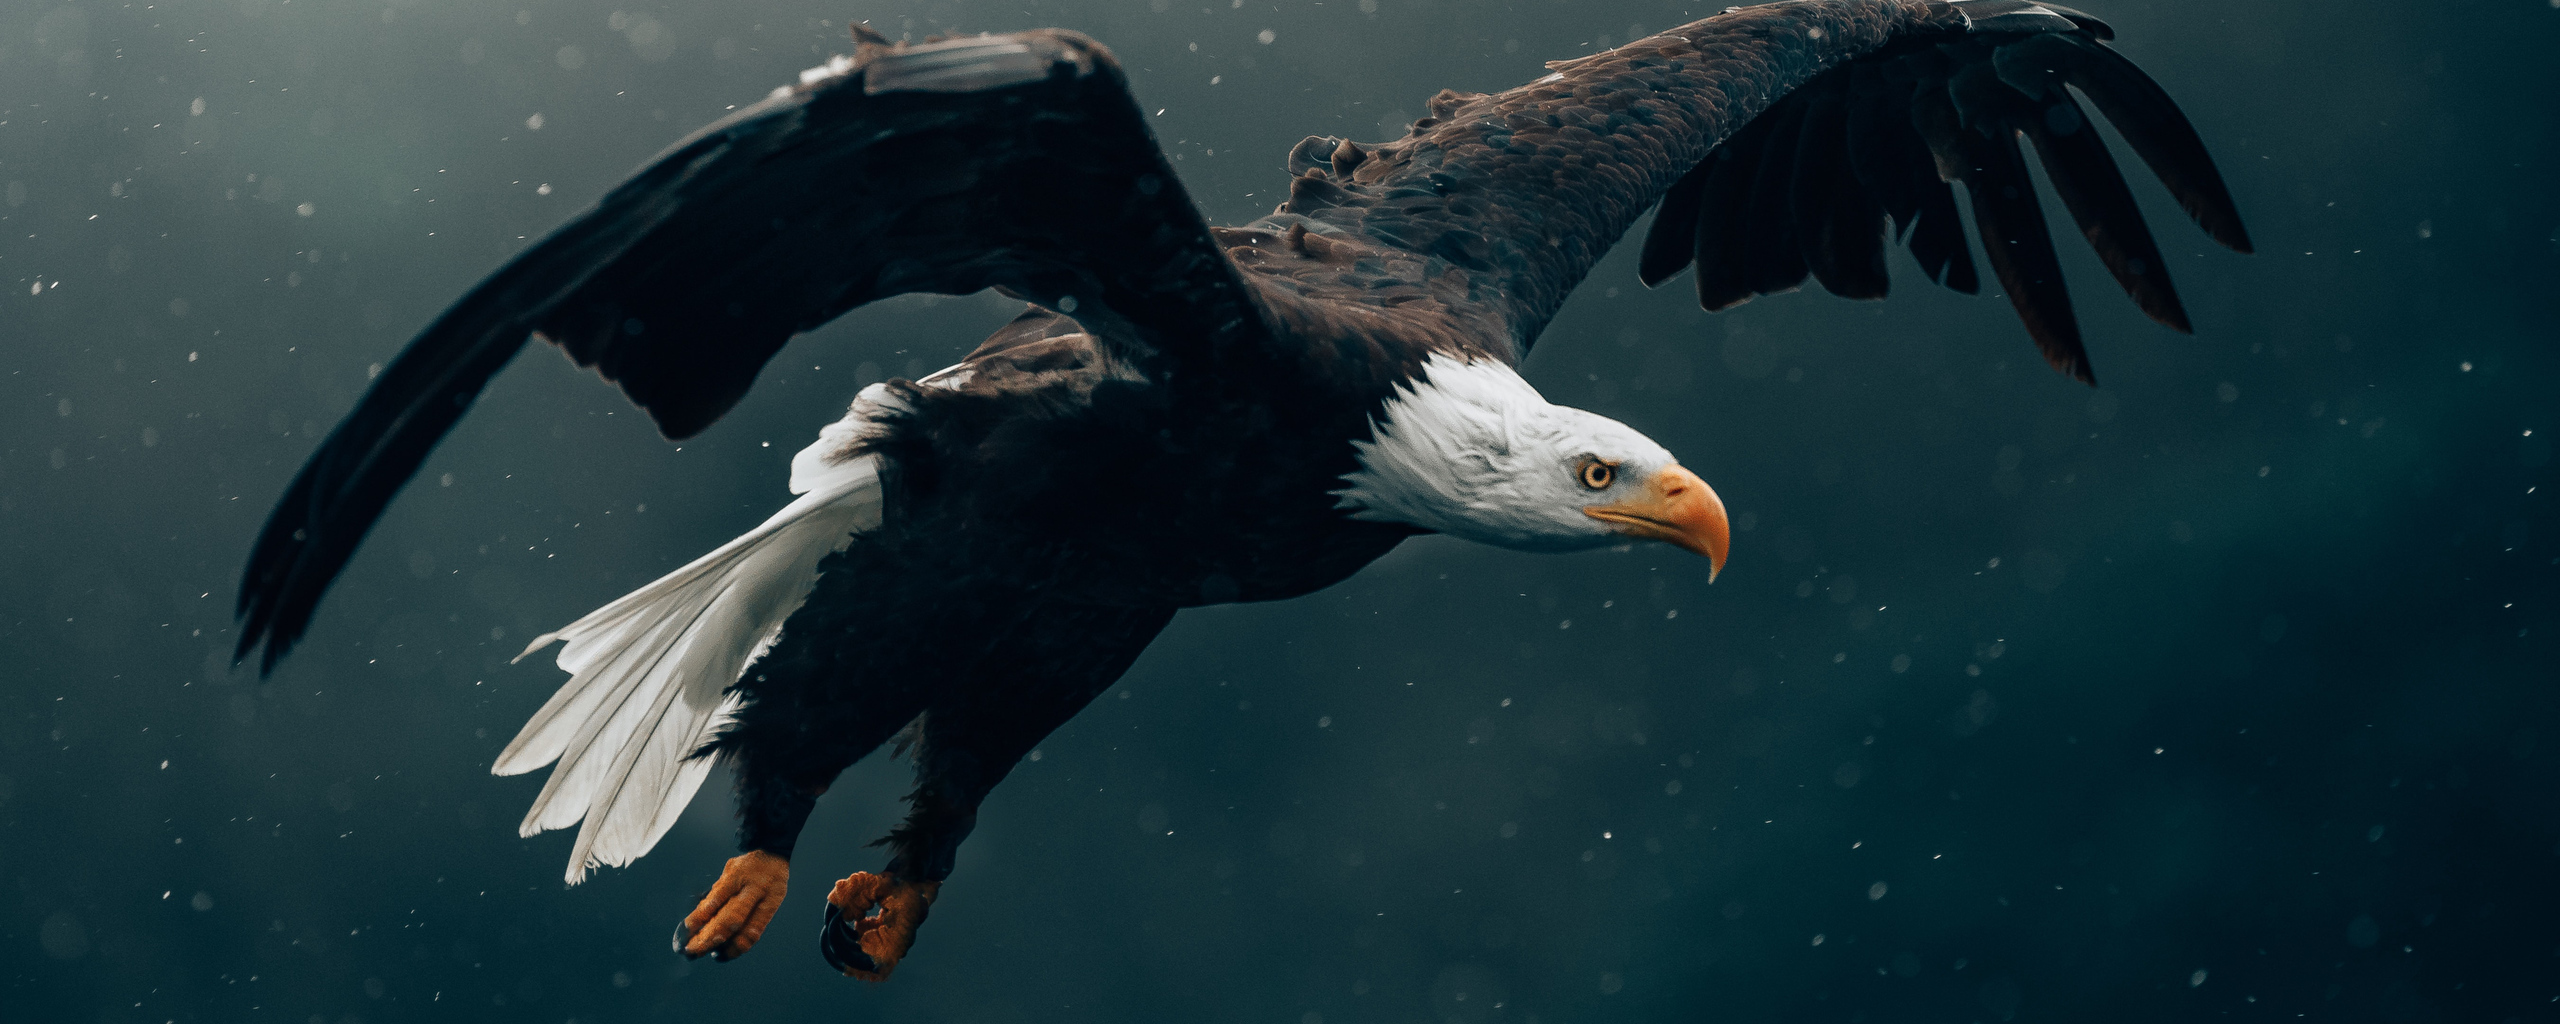 bald-eagle-flying-4k-7w.jpg